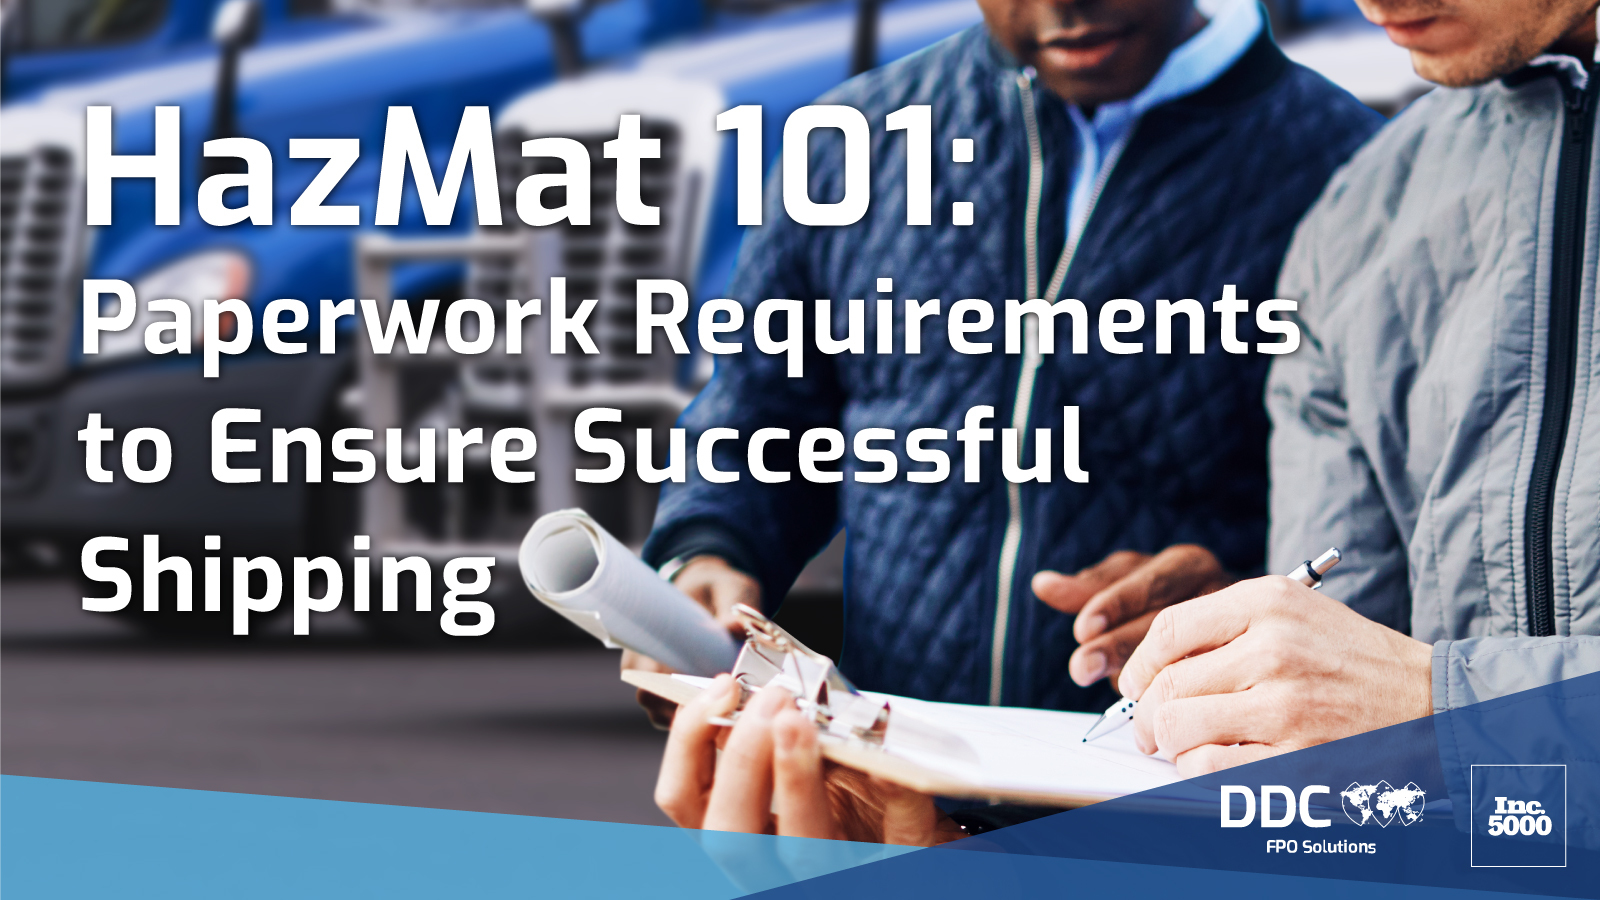 HazMat 101: Paperwork Requirements to Ensure Successful Shipping